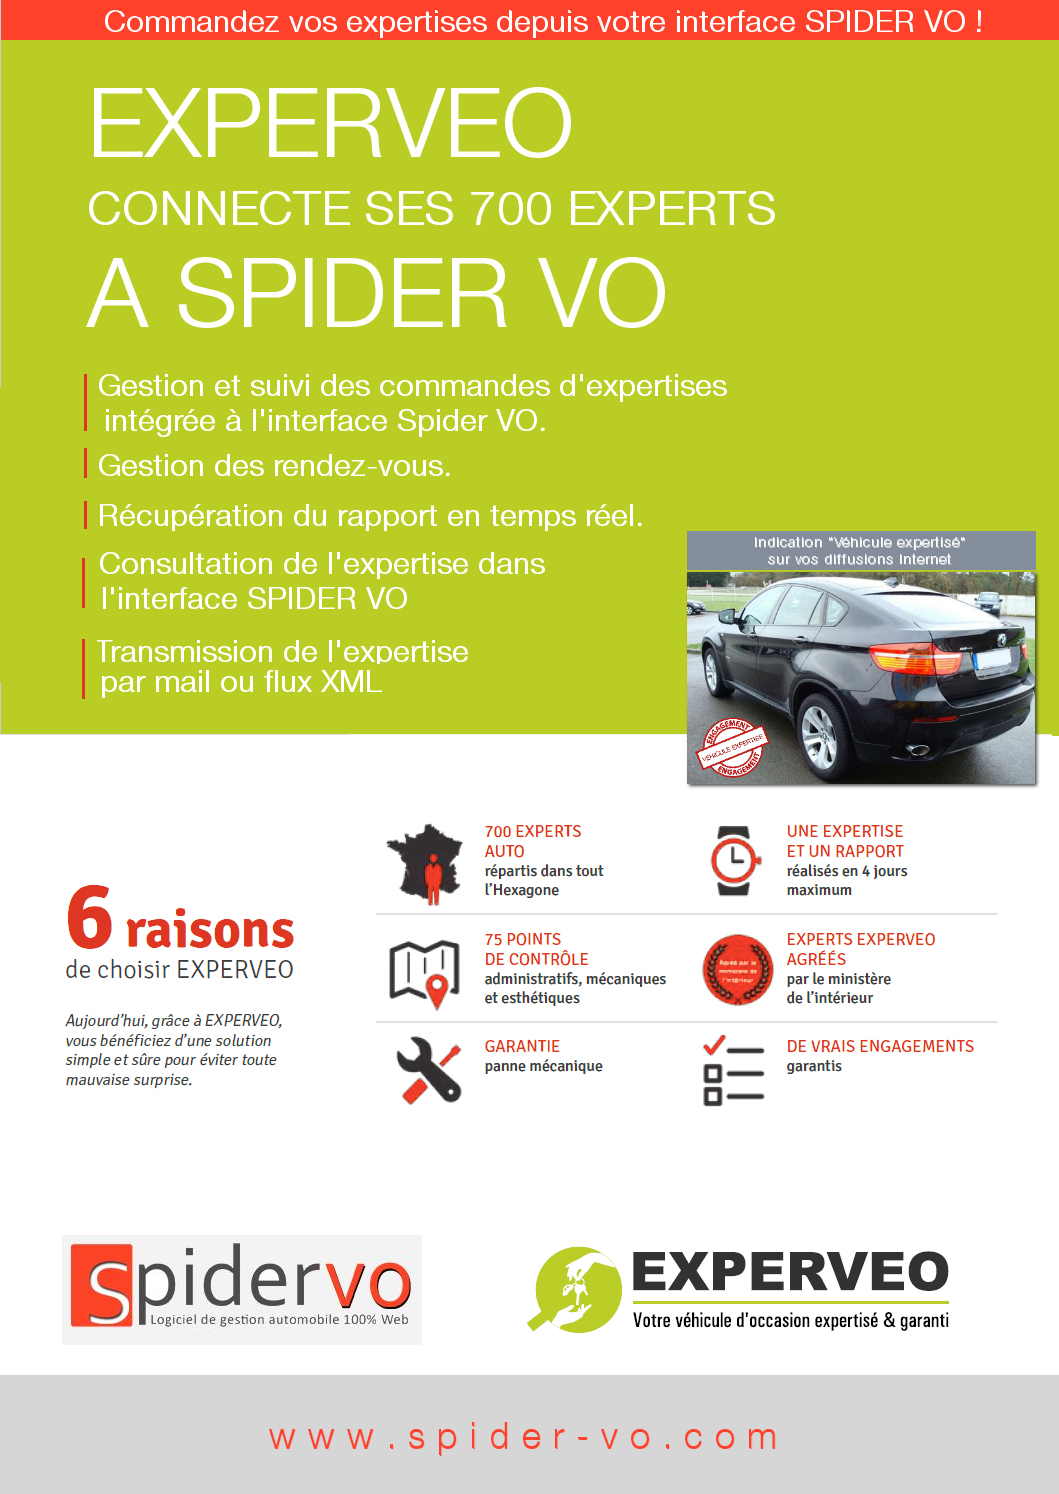 EXPERVEO connecte ses 700 experts à SPIDER VO ! 3